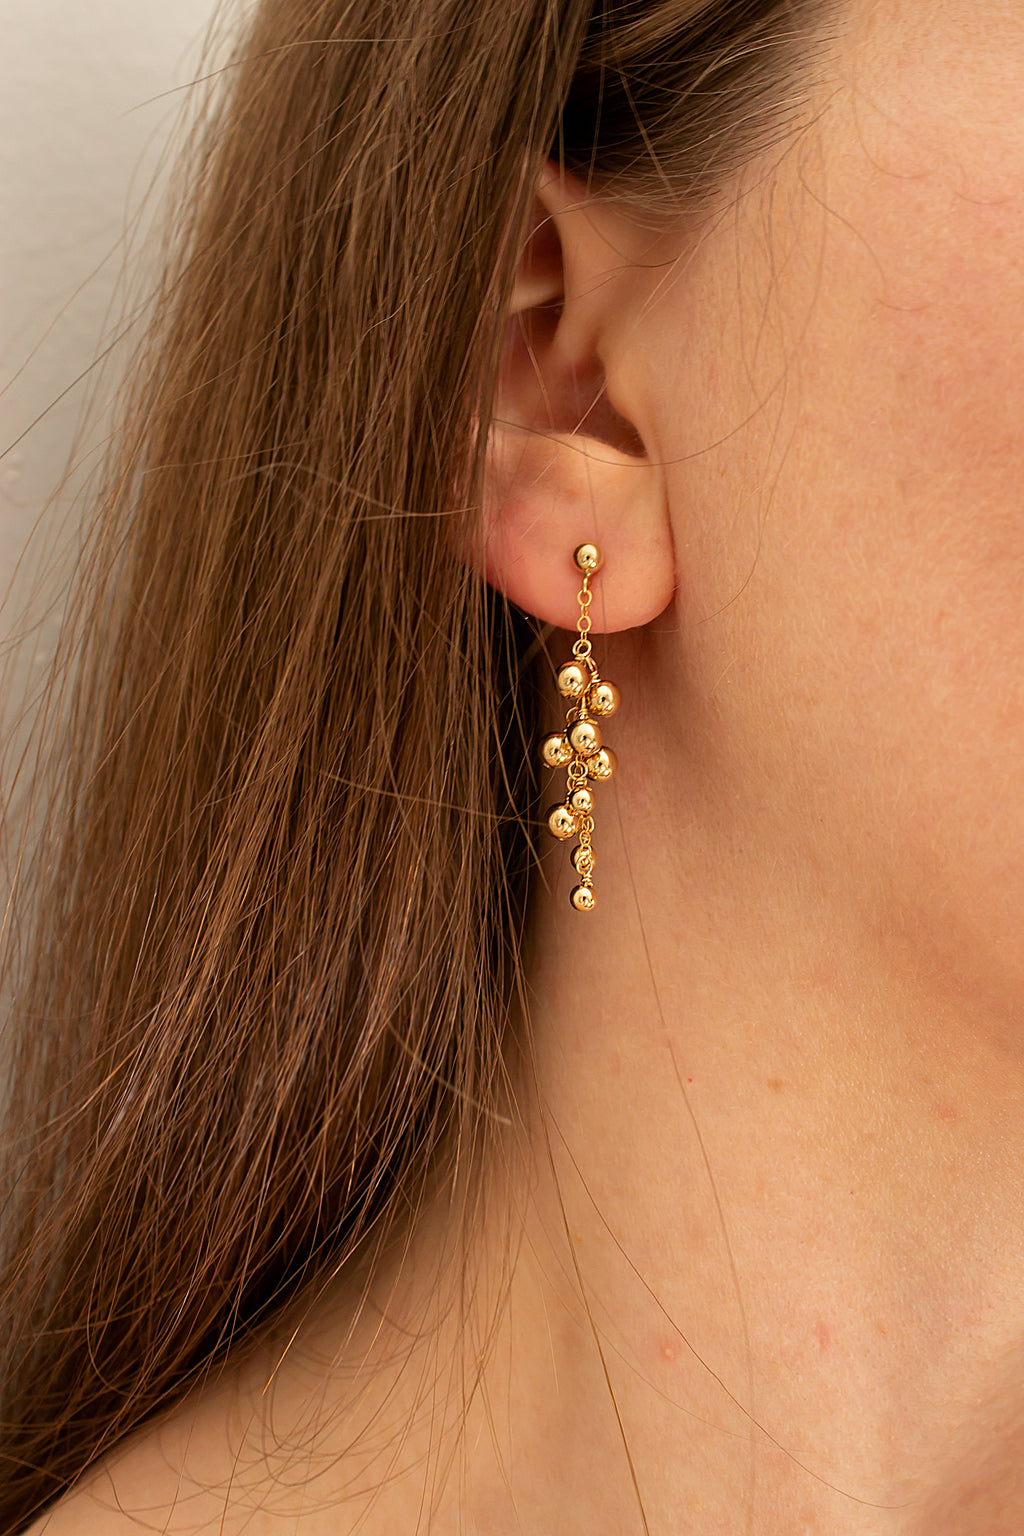 drop earrings on posts